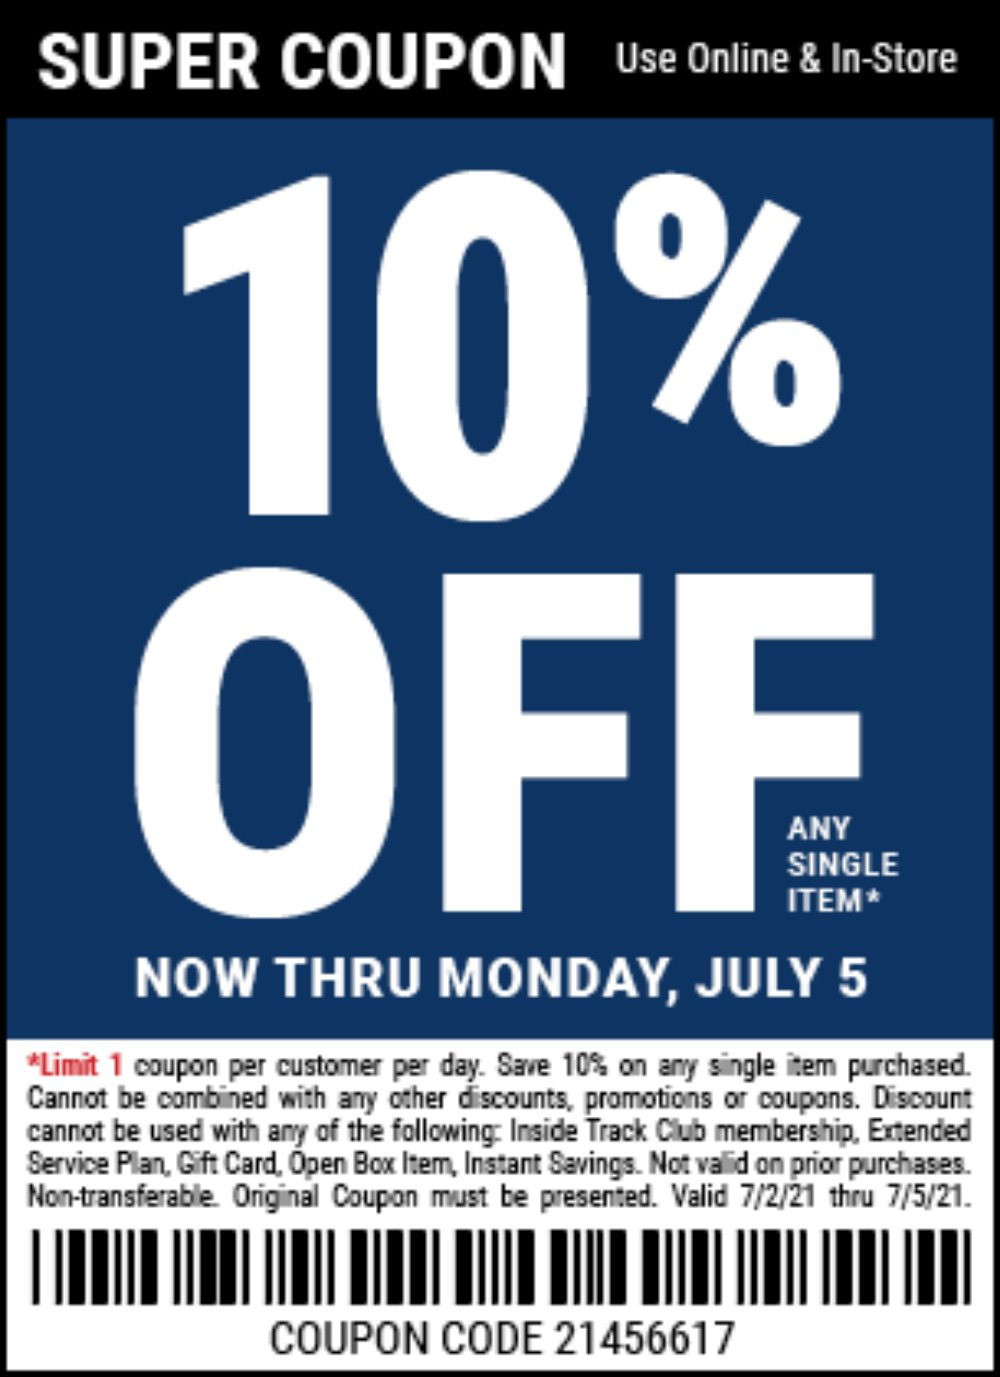 Harbor Freight Coupon, HF Coupons - 10% off no exclusions